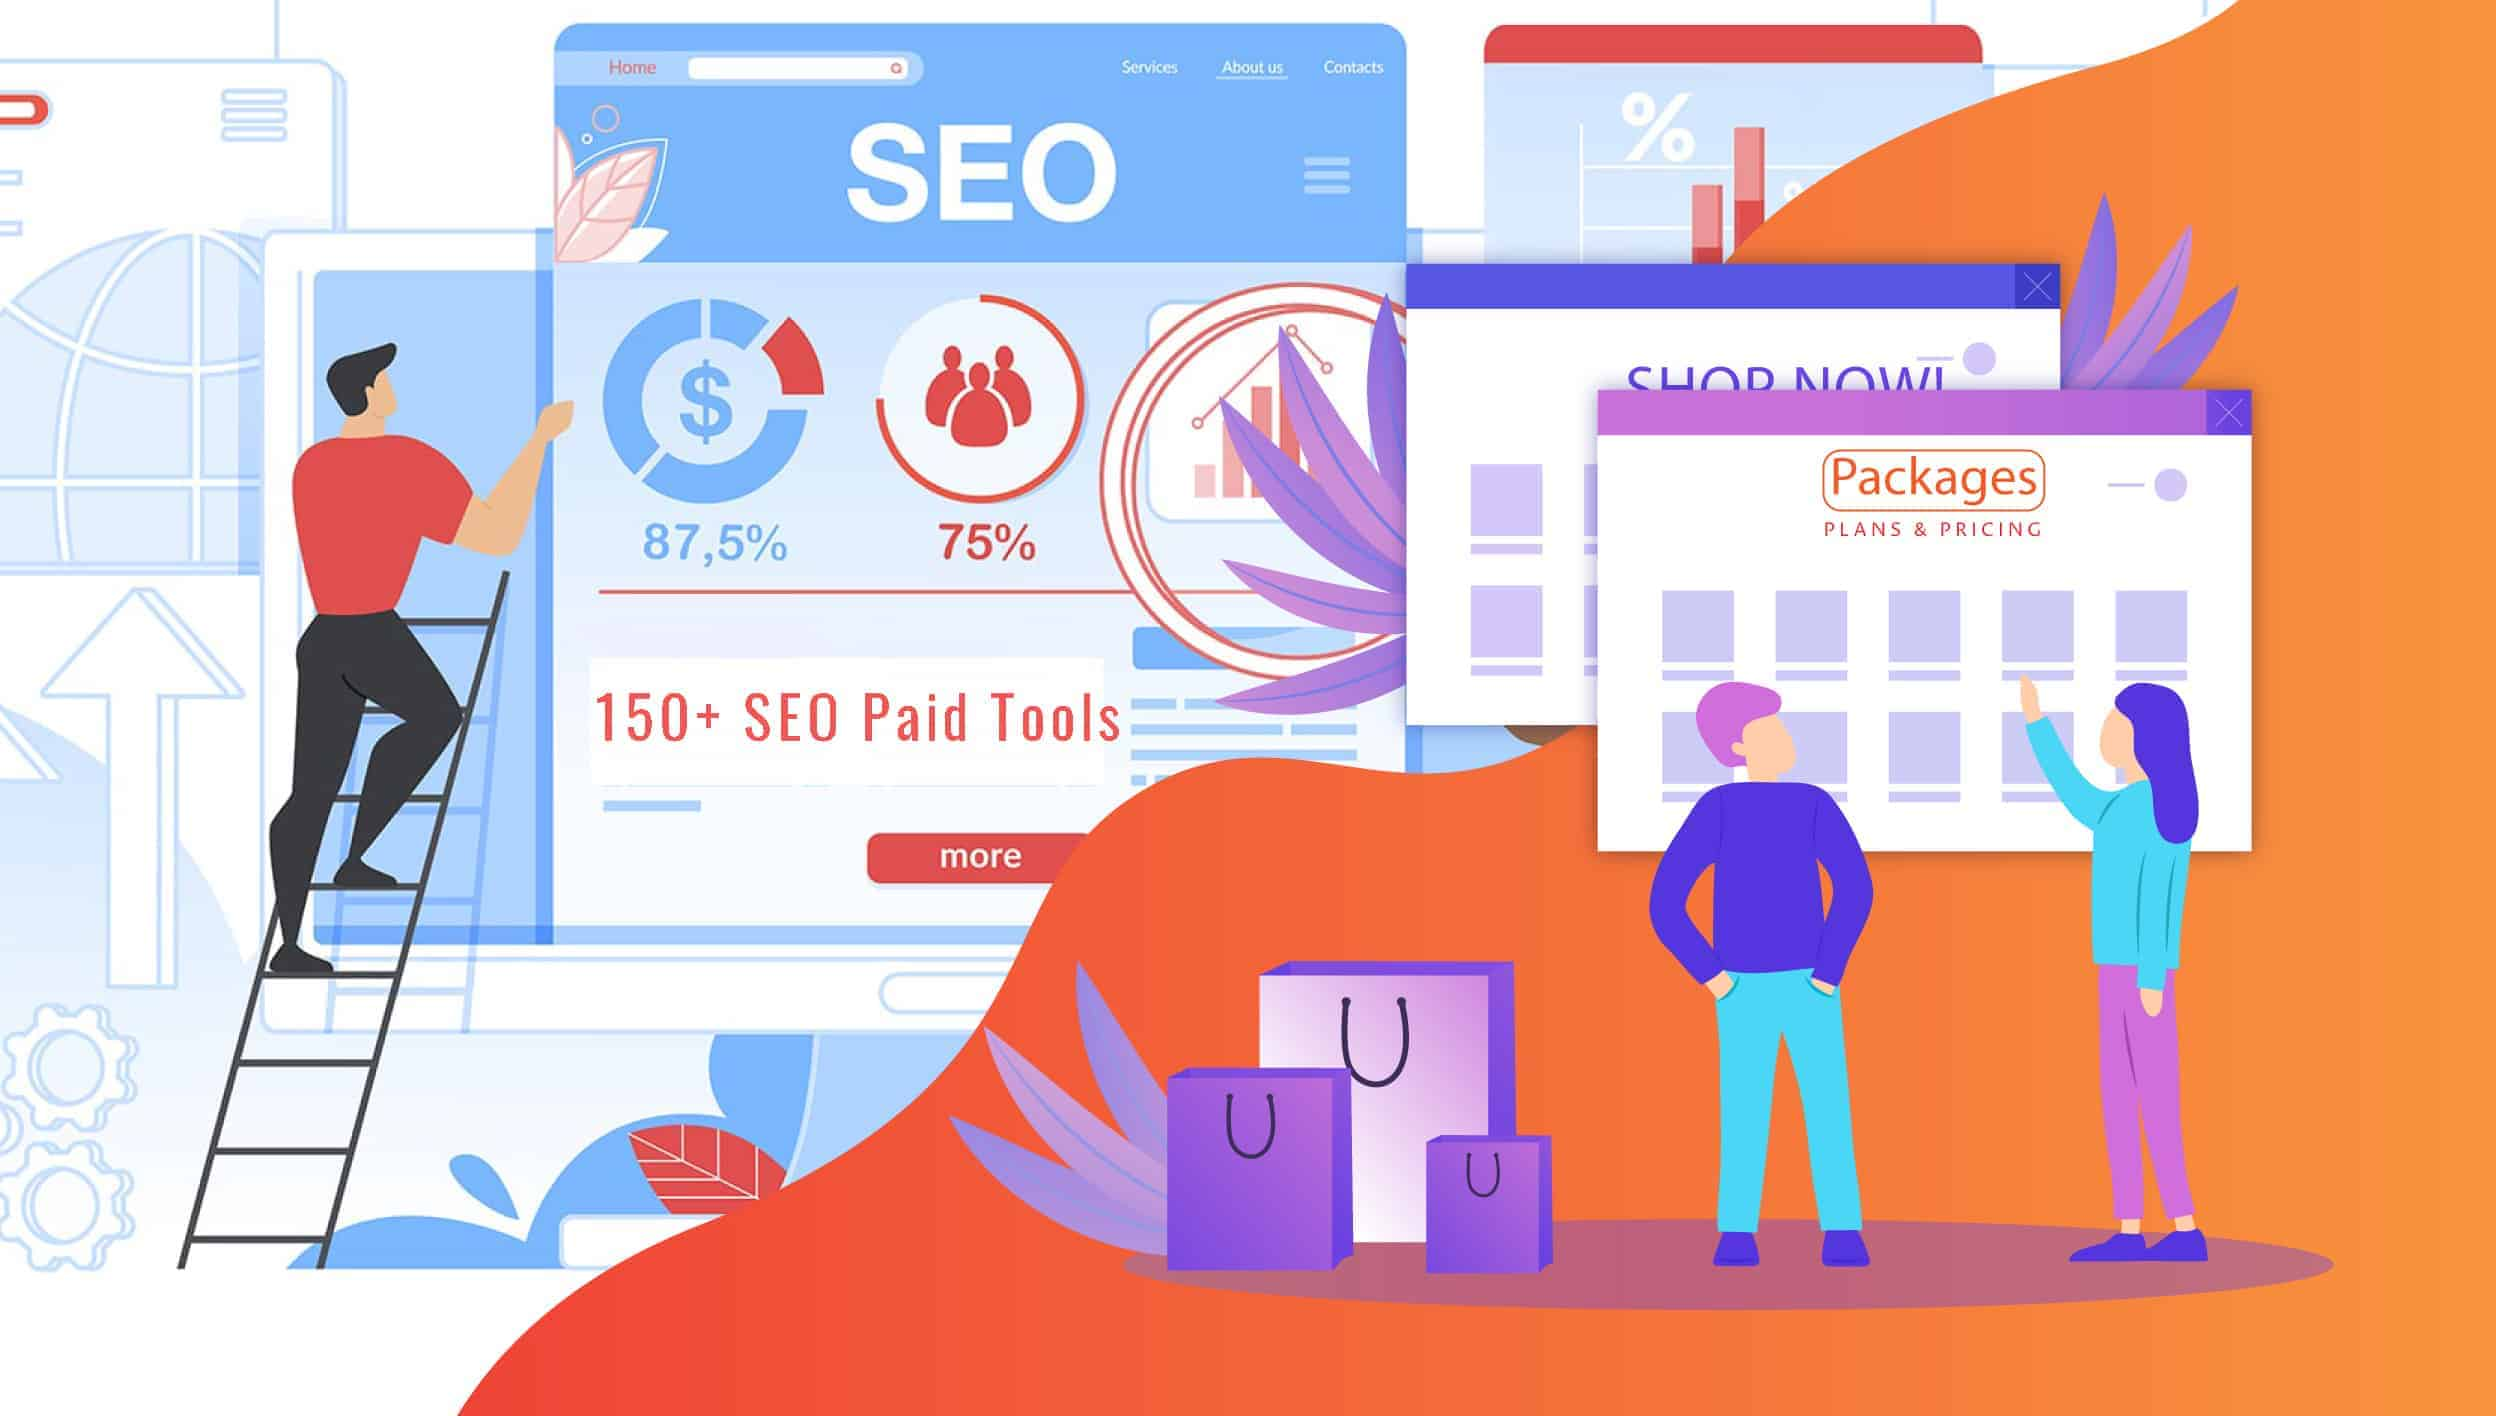 Packages seo tools group buy.We offer 150+ Seo Tools